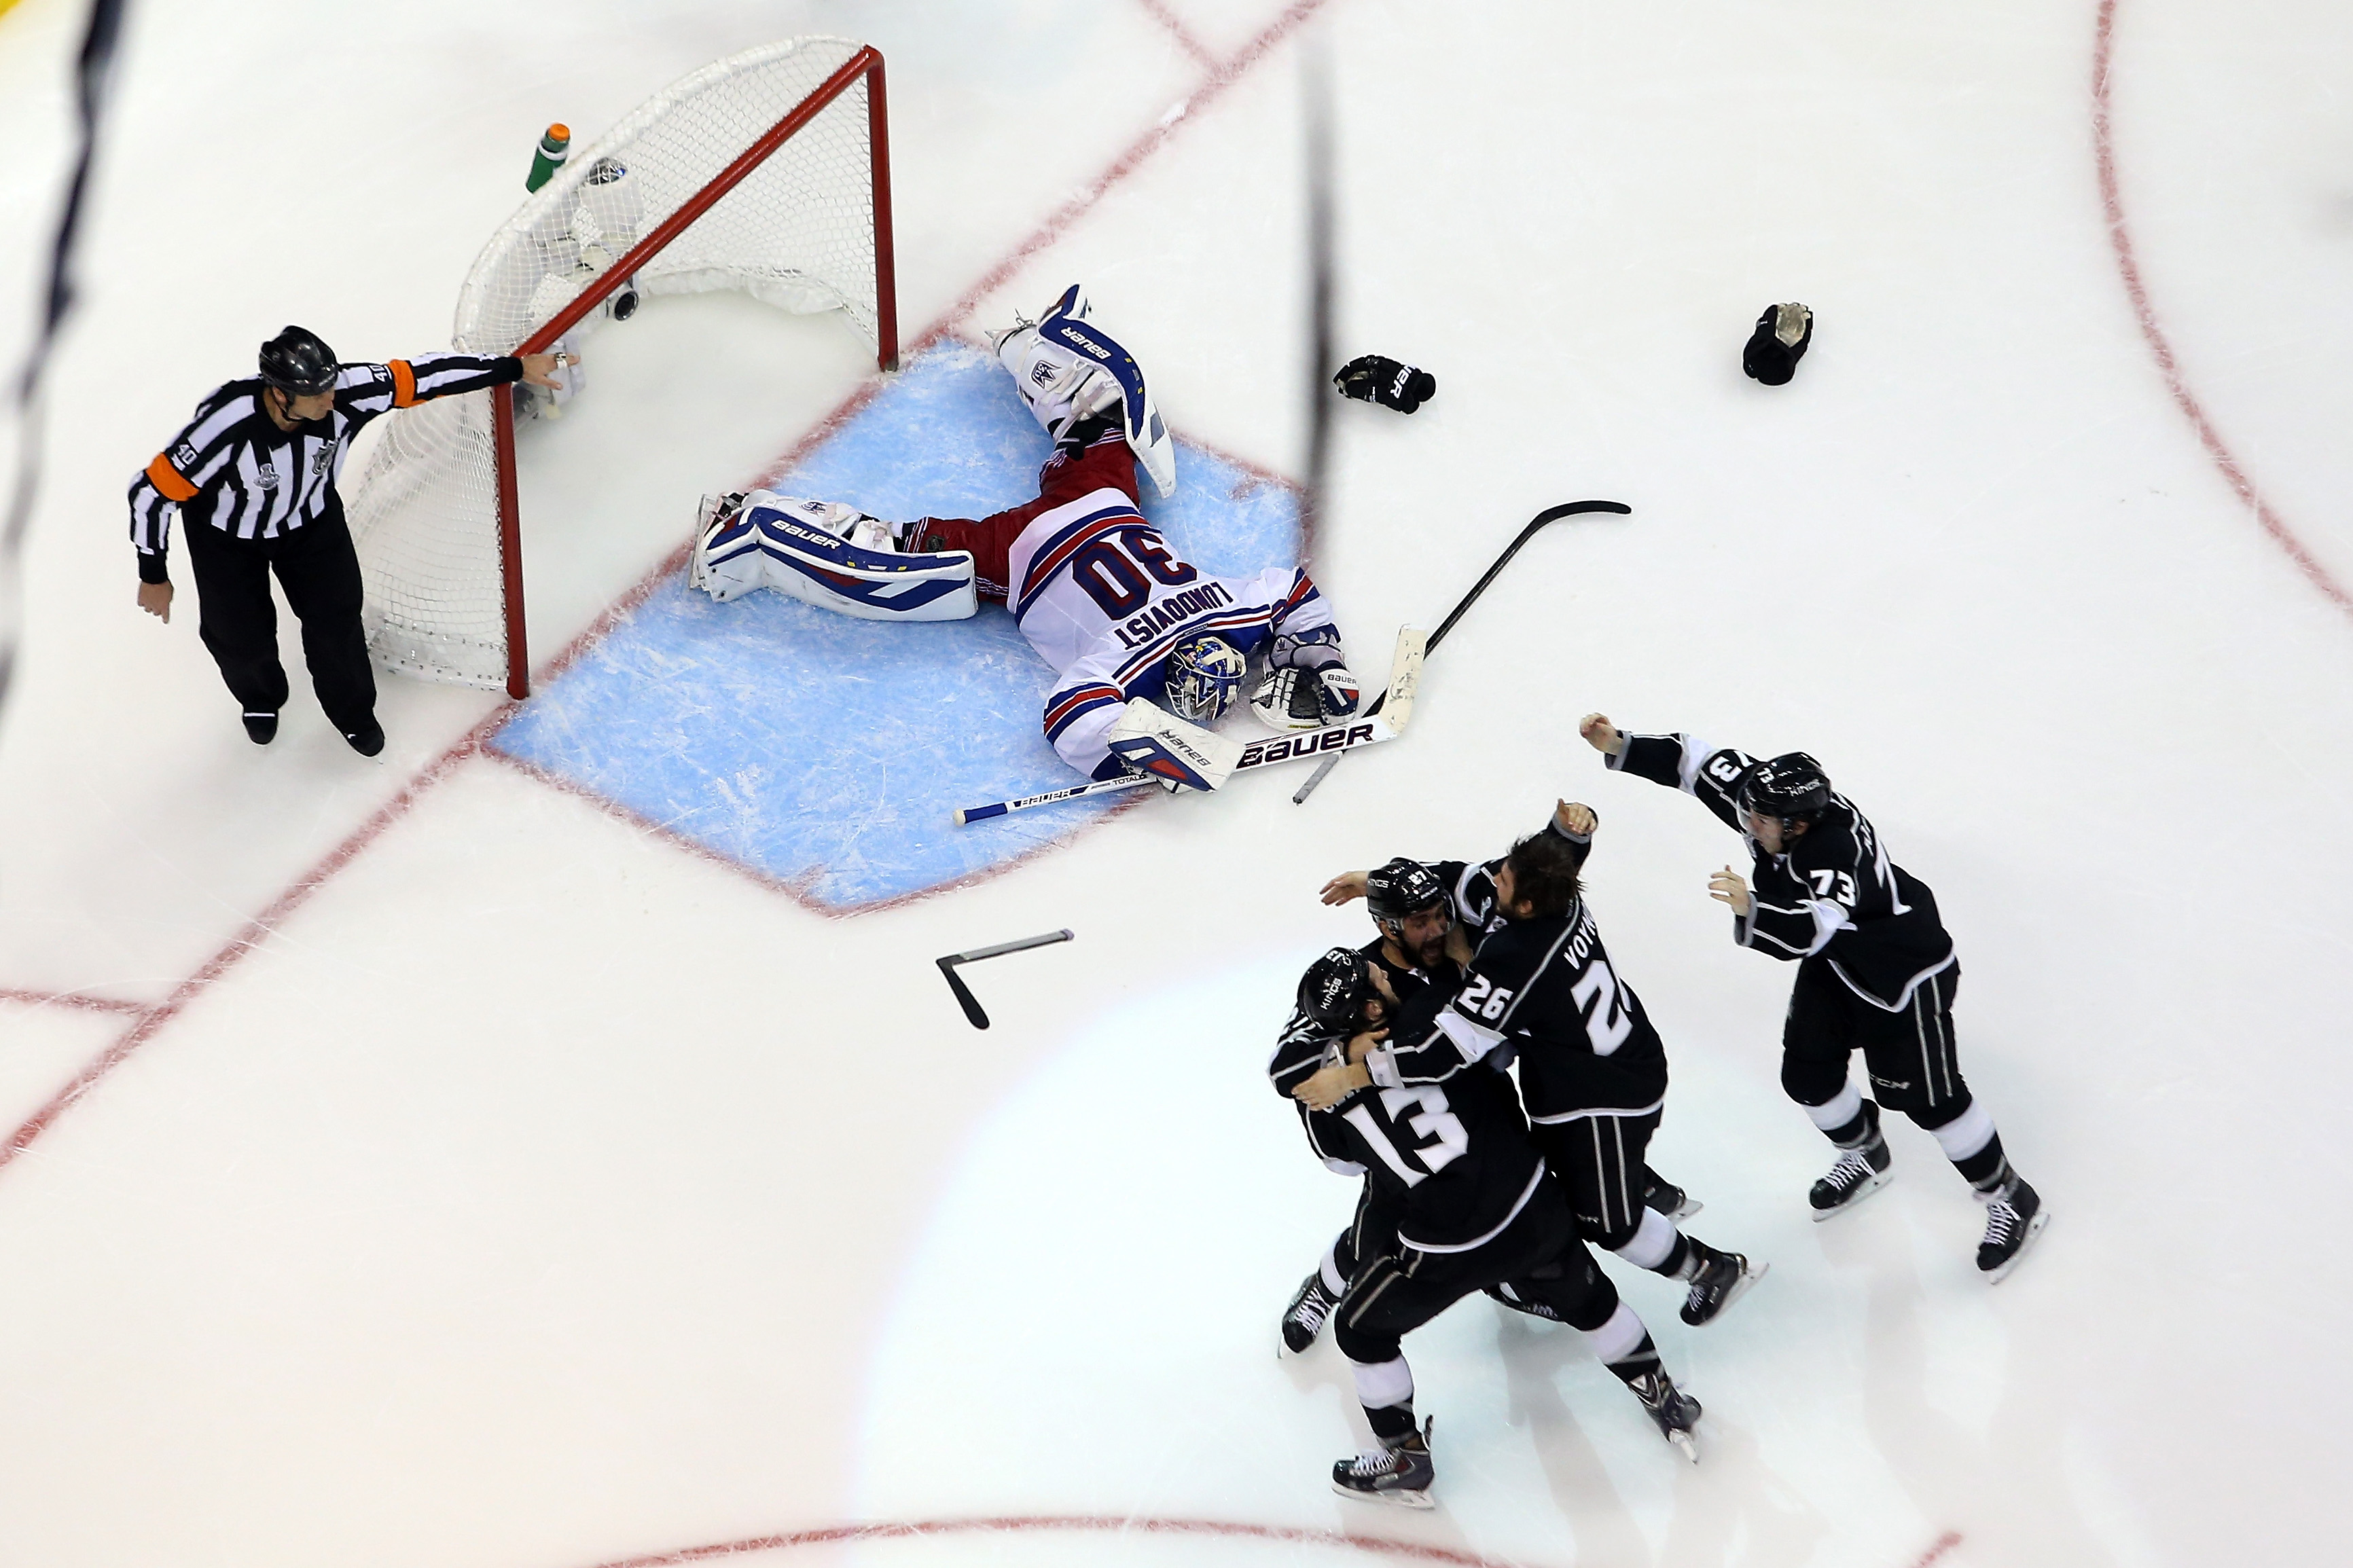 """""""When everything is over, it's a weird, empty feeling,"""" says Lundqvist. (Photo by: Bruce Bennett/Getty Images)"""